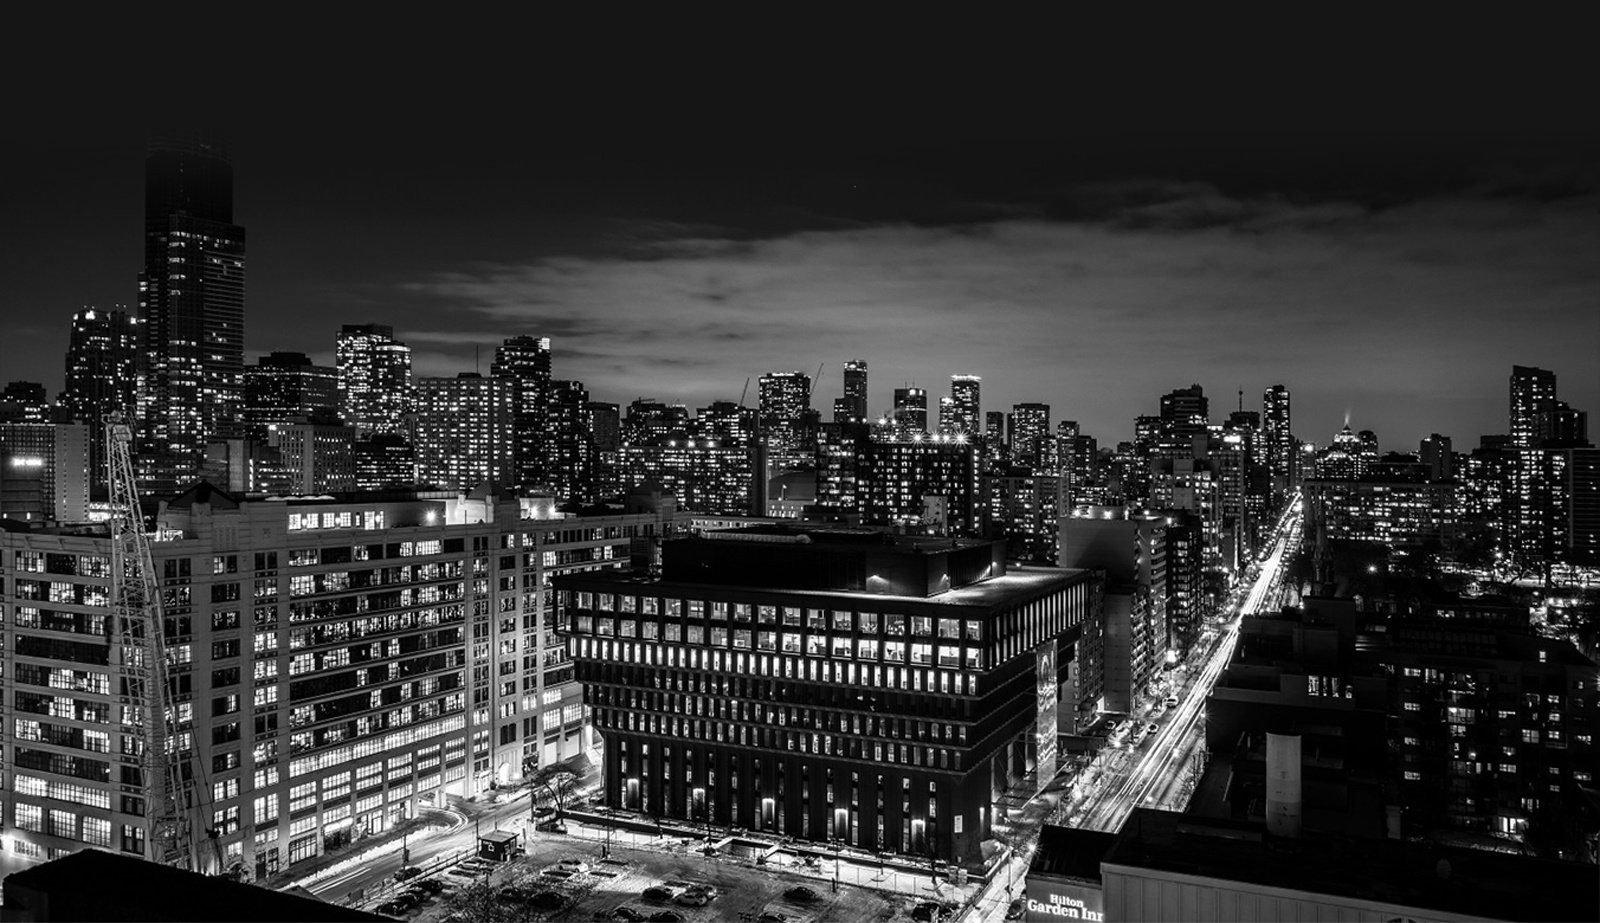 Monochrome Skyscraper - Editorial Photography Toronto by Matt Tibbo